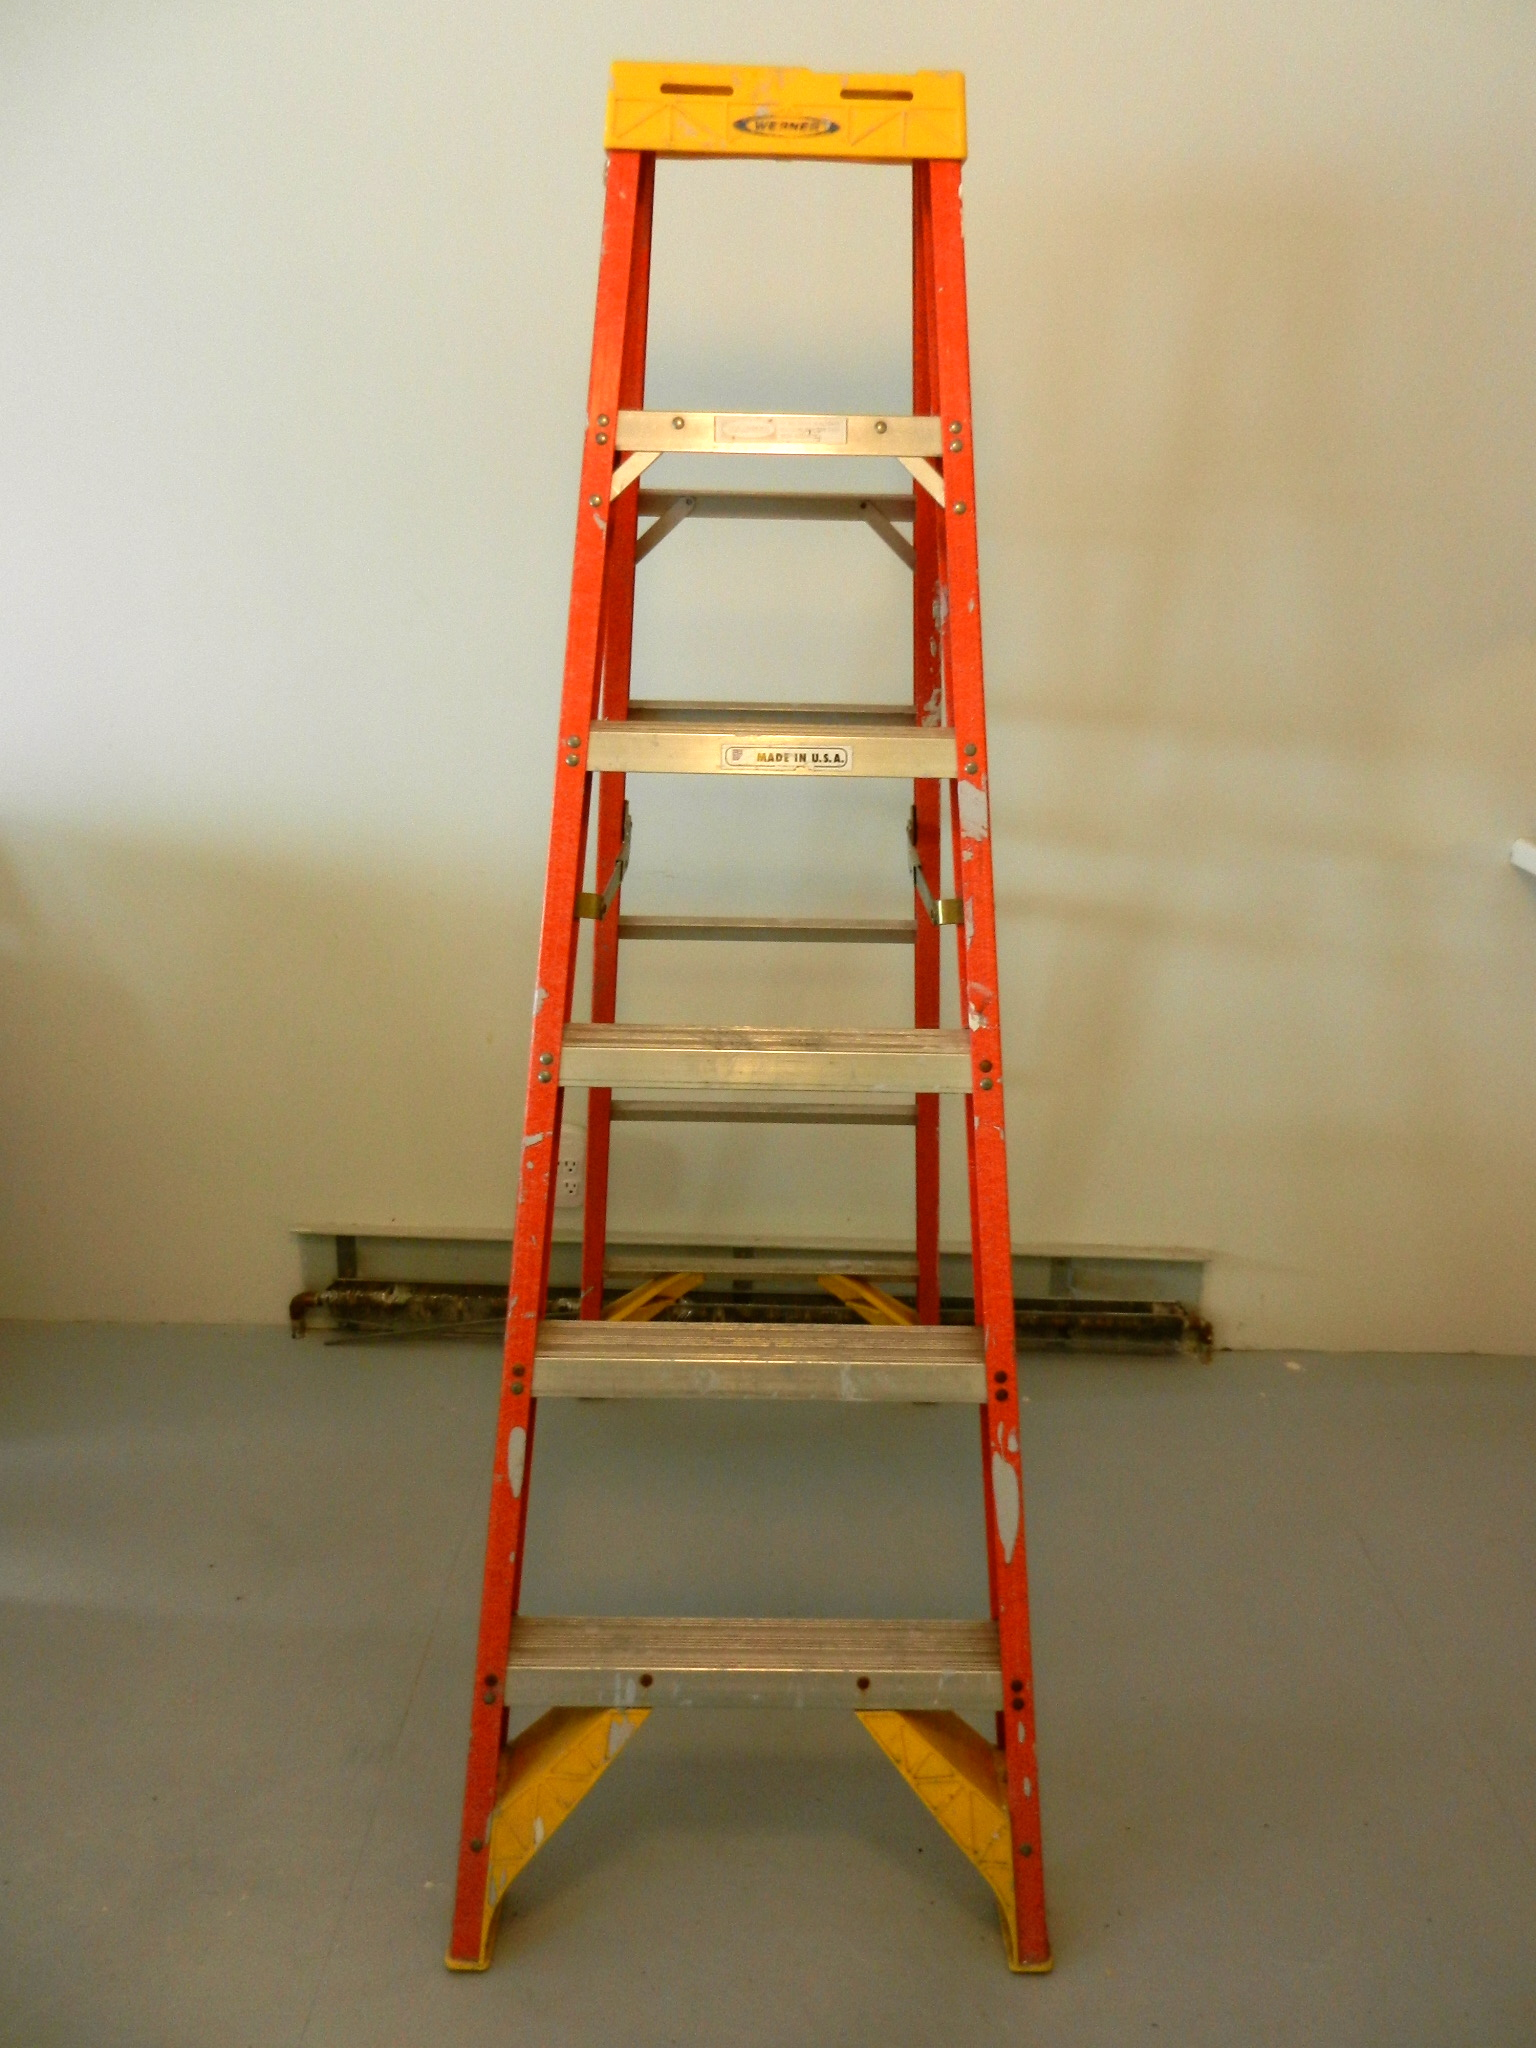 ladder: symmetry